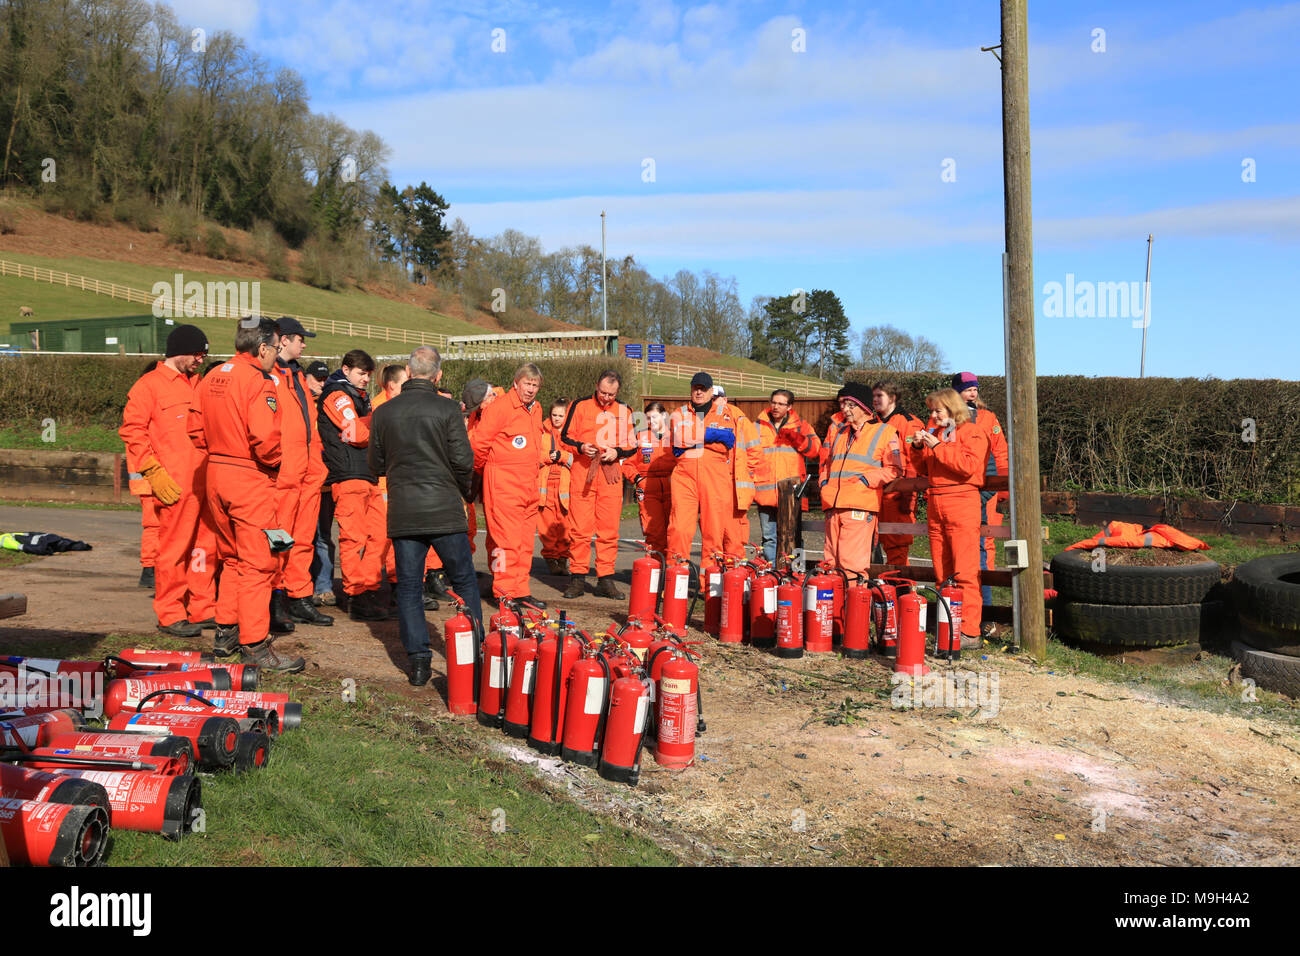 Motor sport marshals being instructed in the use of fire fighting equipment. - Stock Image